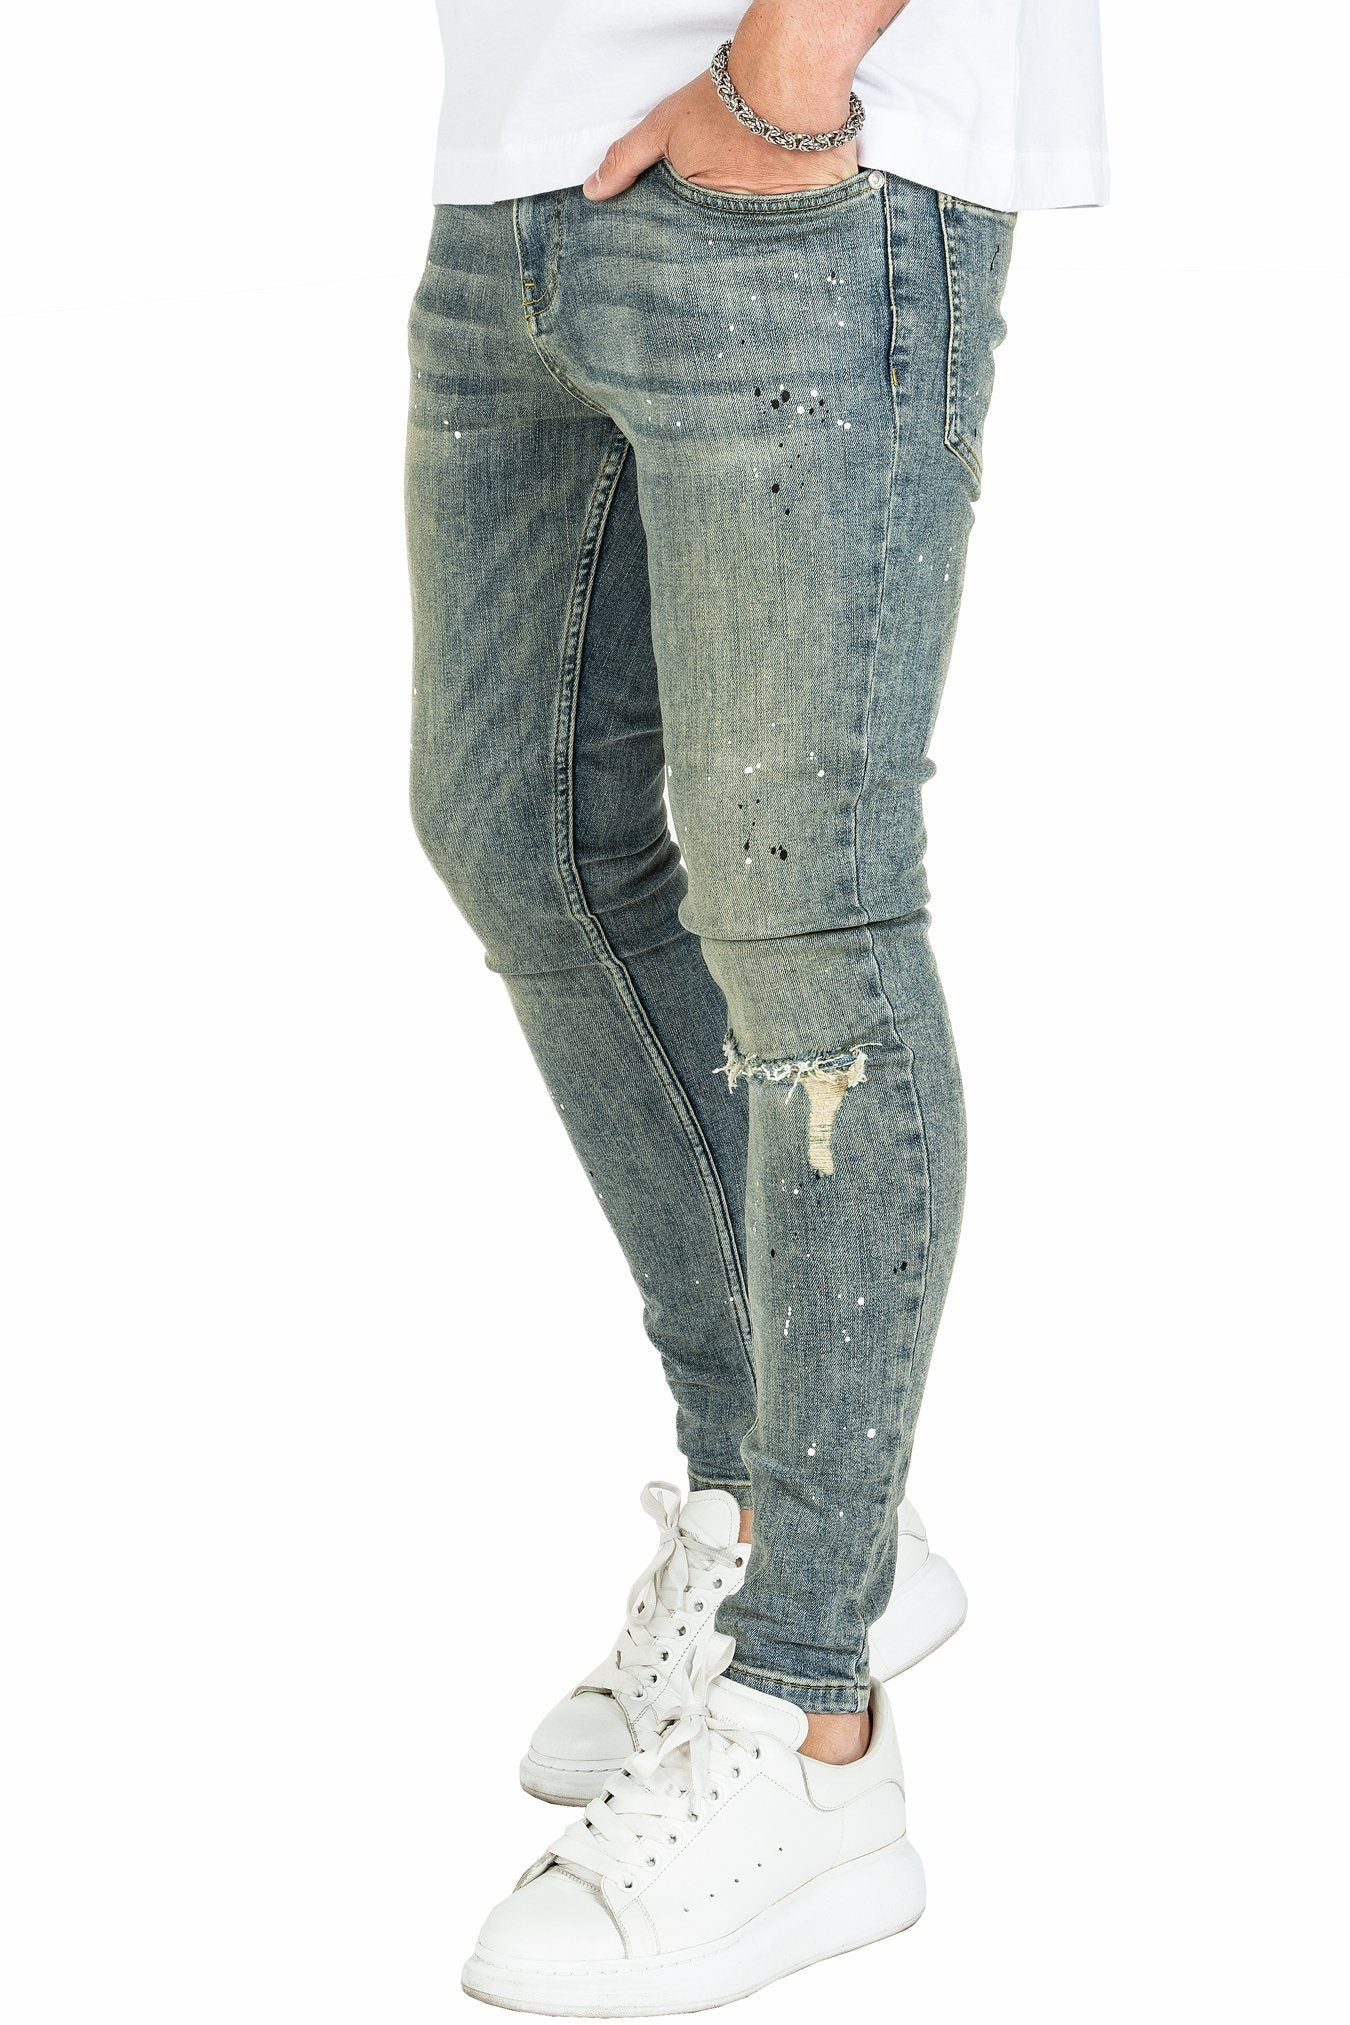 Fio Destroyed Jeans Sand Washed Blue - PEGADOR - Dominate the Hype